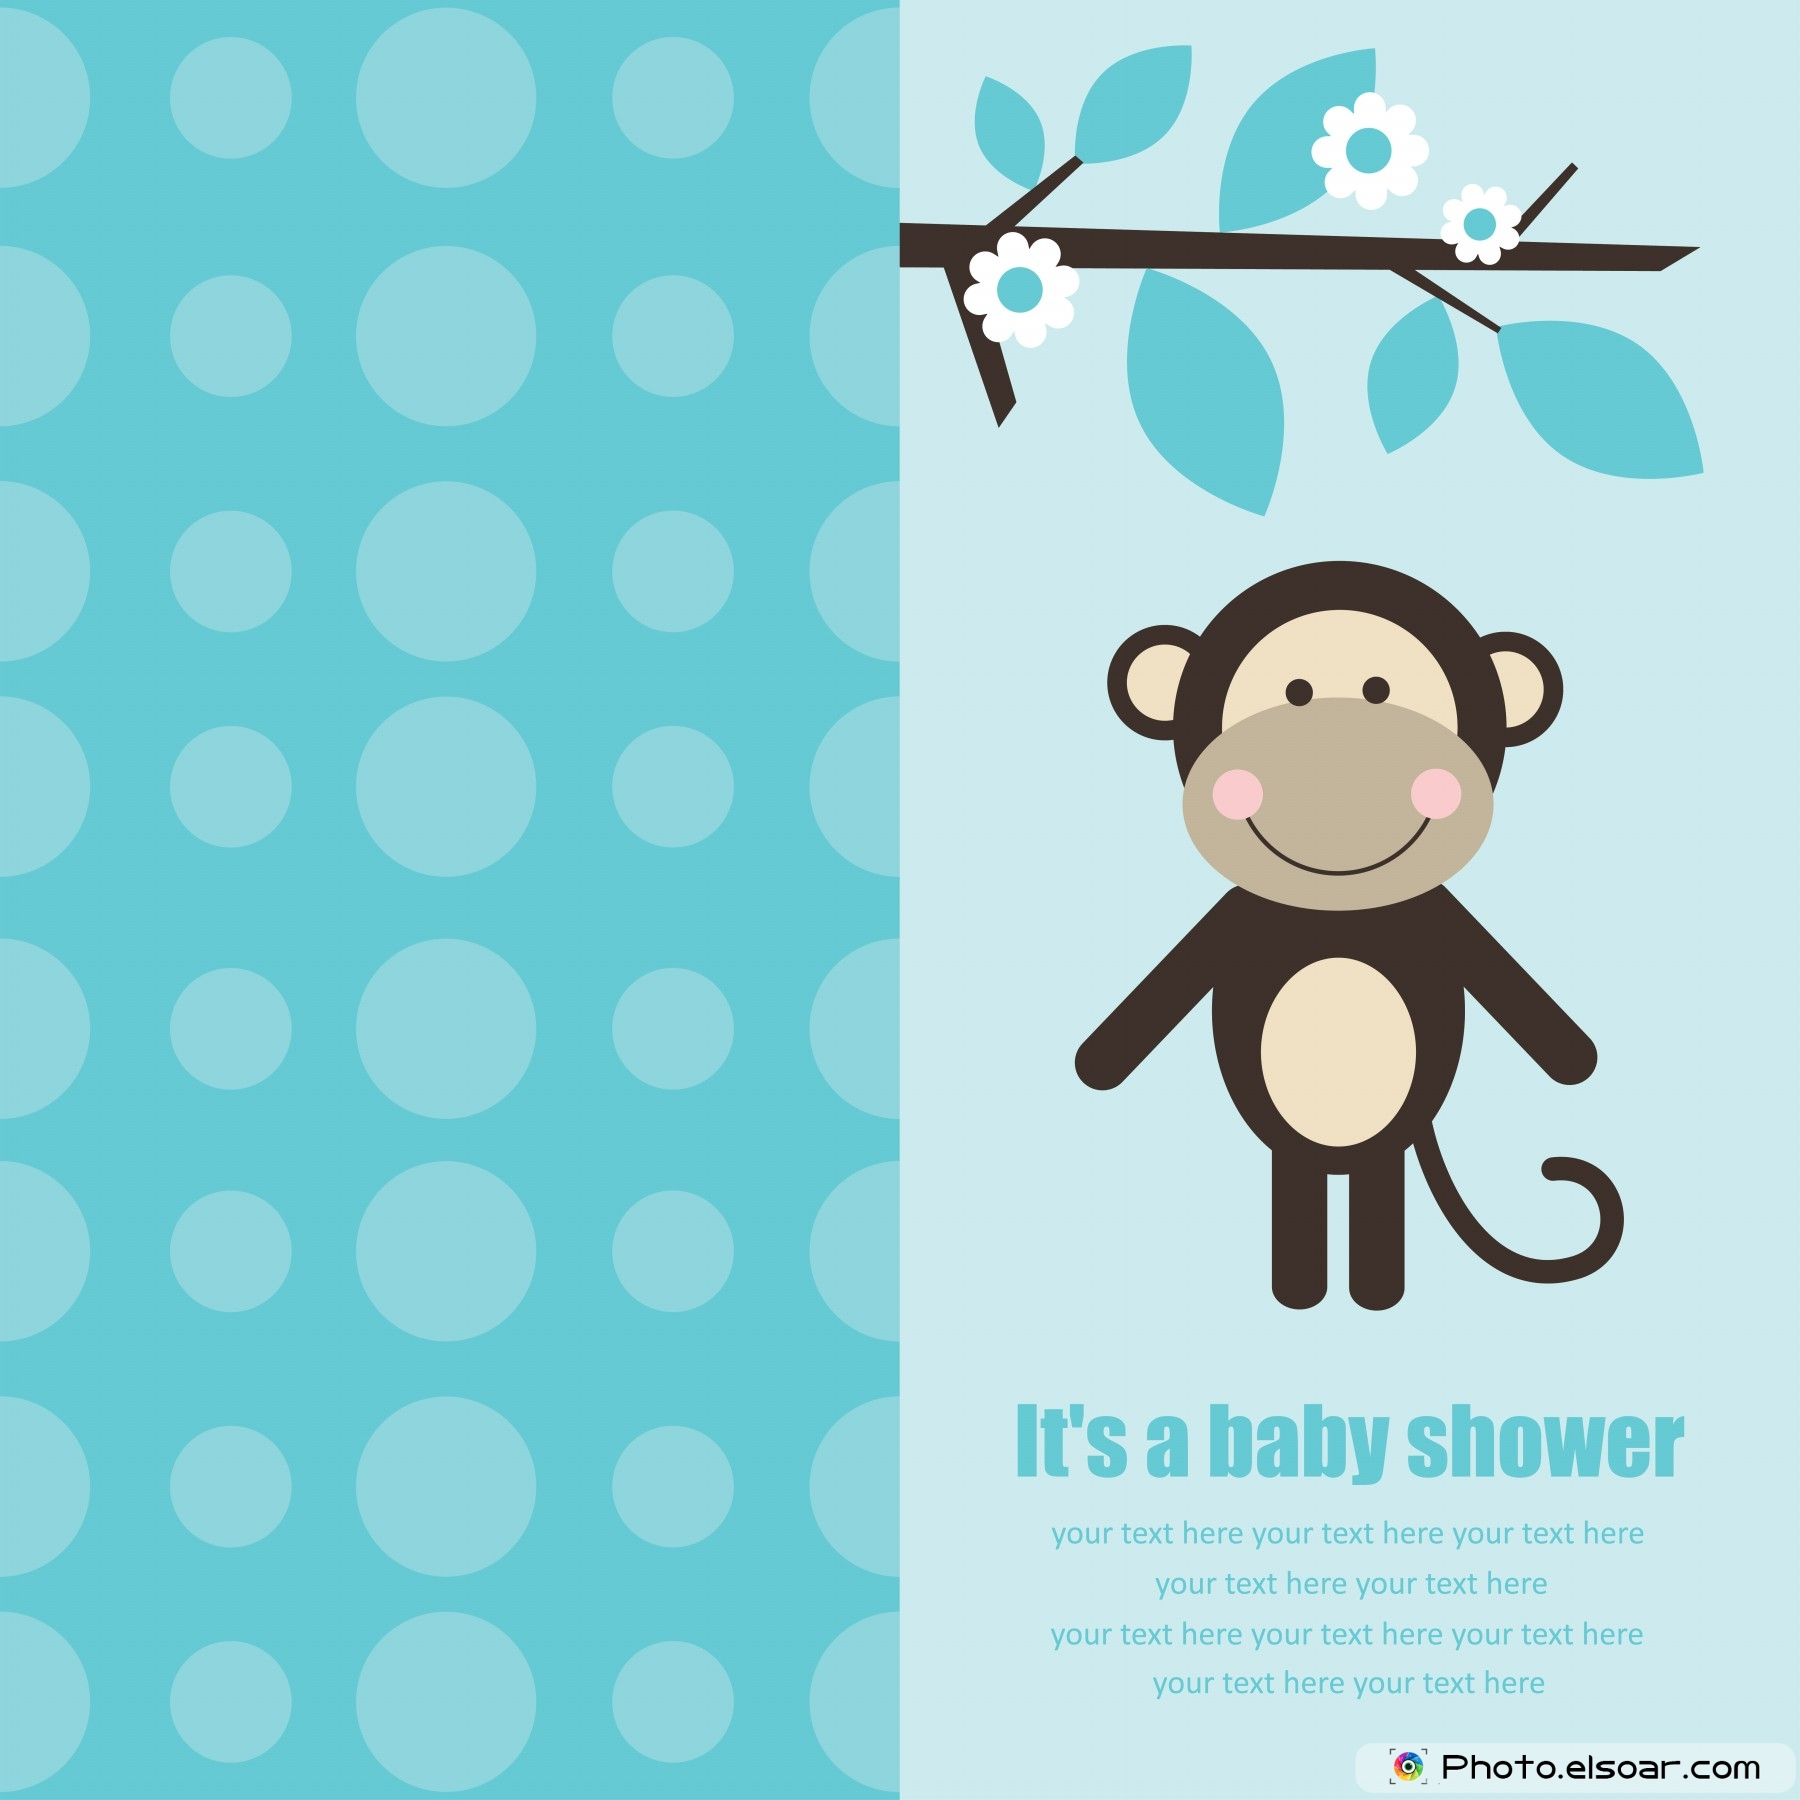 Superb Baby Shower Card With Cute Monkey